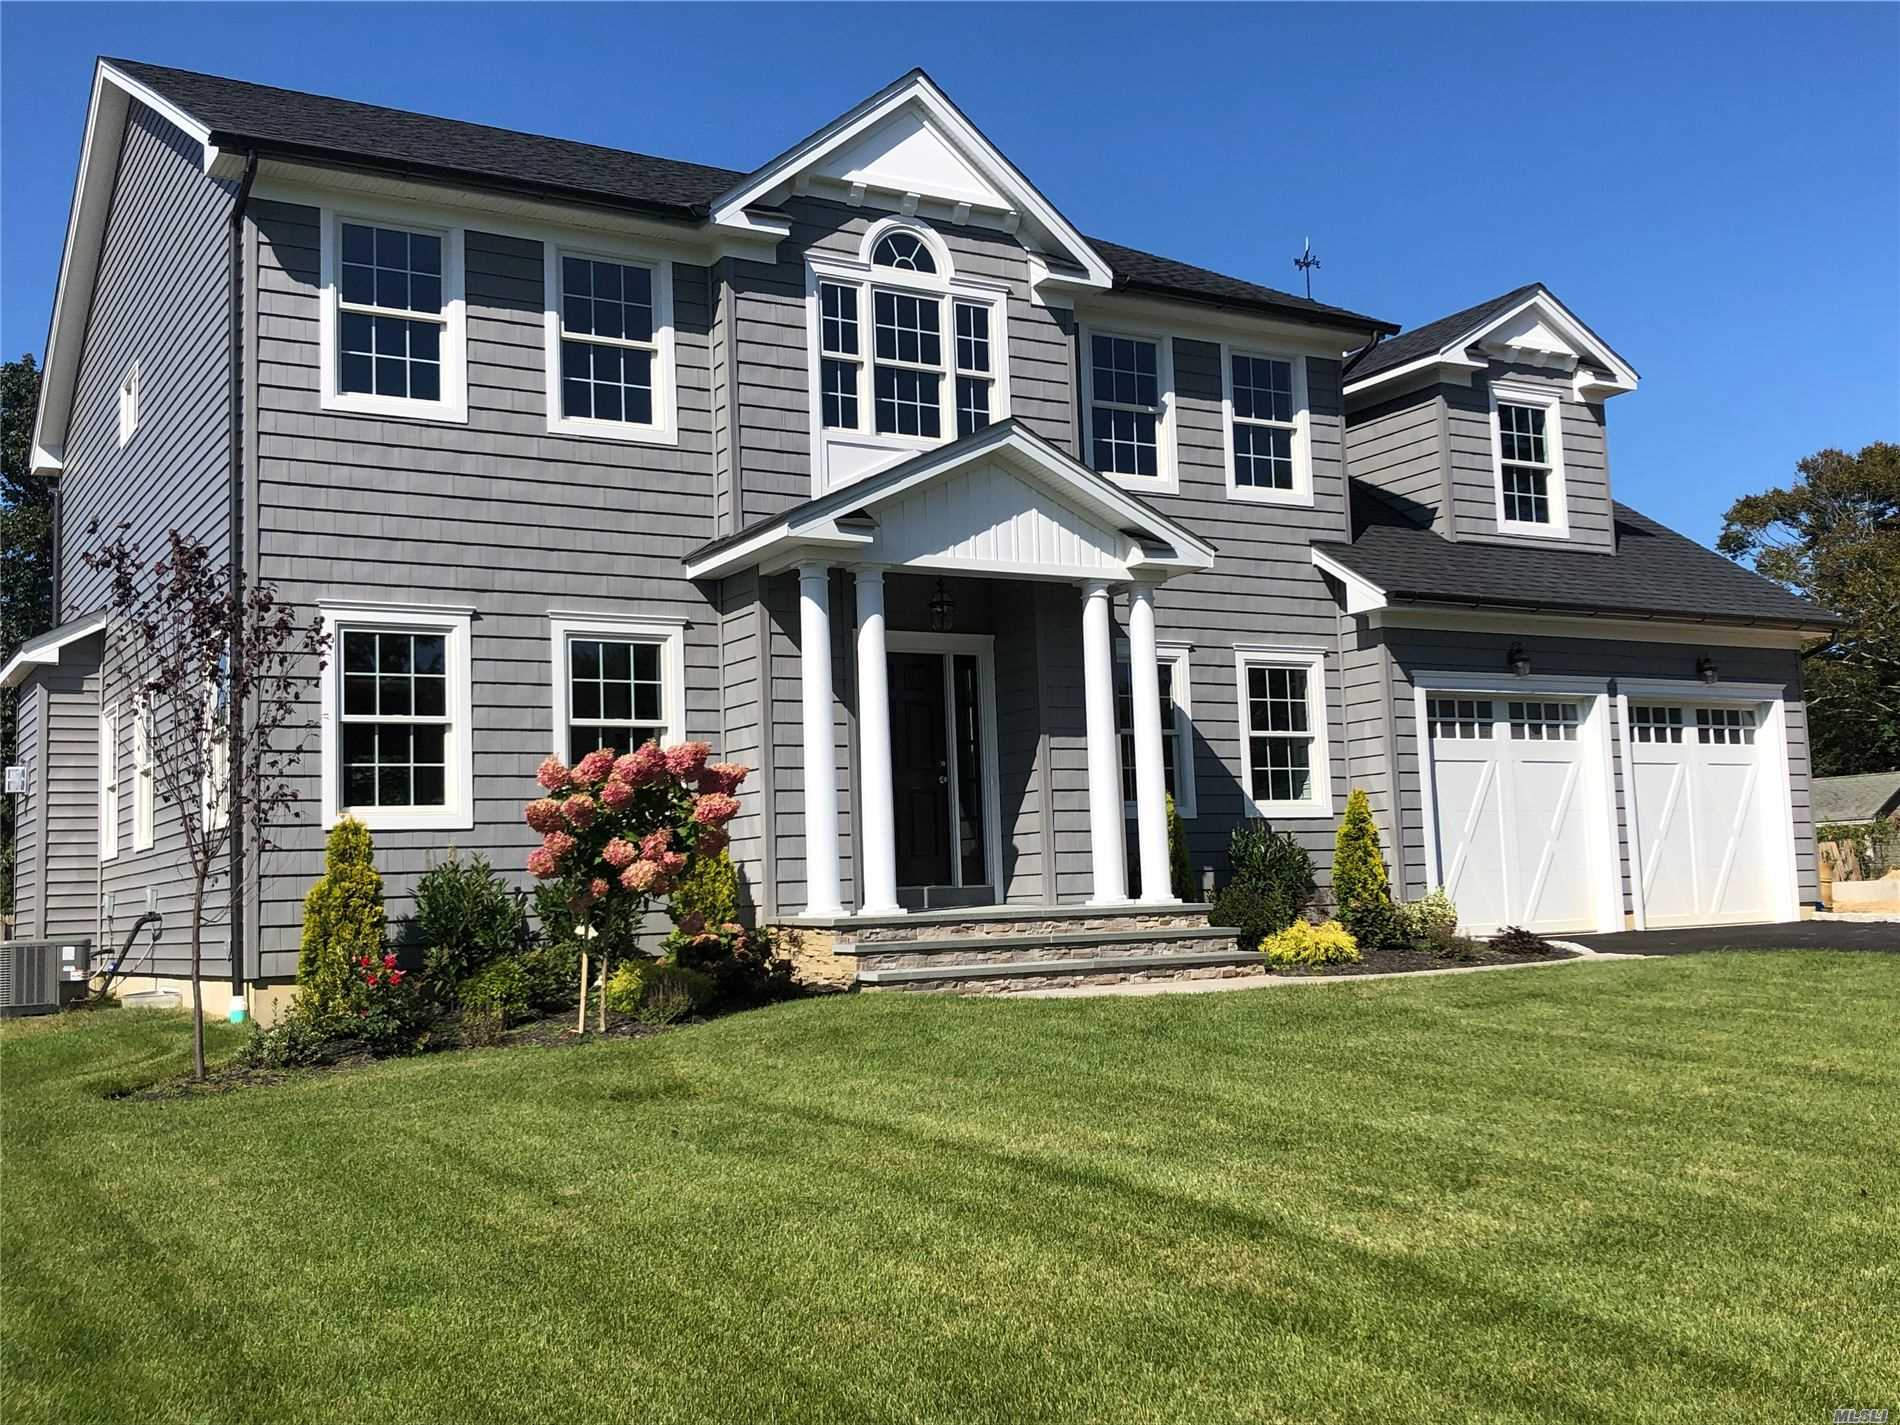 Beautiful New Construction In South Sayville! 3000 Square Feet Of Living Space With Hardwood Floors On First And Second Floors, 5th Bedroom/Office On Main Floor, Plus Full Basement And 440 Sf 2-Car Garage. Quality Construction And Attention To Detail! Still Time To Customize! Lot Is Shy 1/2 Acre. Close to Beach, Marina, Ferries and Town! Survey, Plans And Specs Are Attached. Photos Shown Are From Recently Completed Home By JLP Associates, And Resemble What Will Be Built.